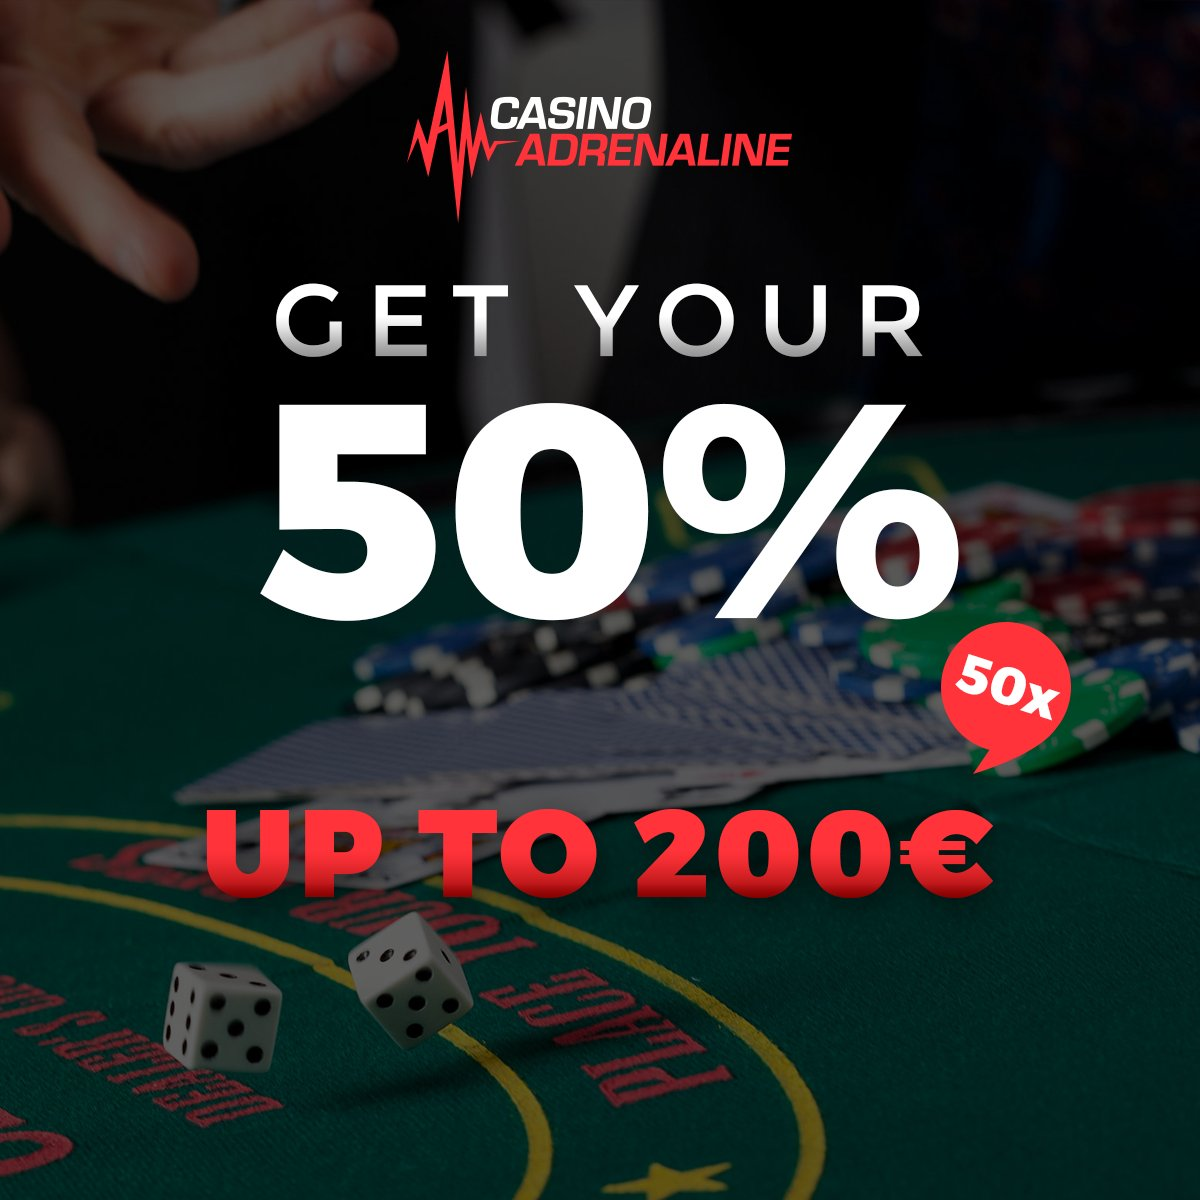 test Twitter Media - Use your chances today! Get your 50% bonus up to 200 EUR 50x, bonus and deposit! 😲😎 #CasinoAdrenaline #CasinoAdrenalinebonus https://t.co/juoatTB37R